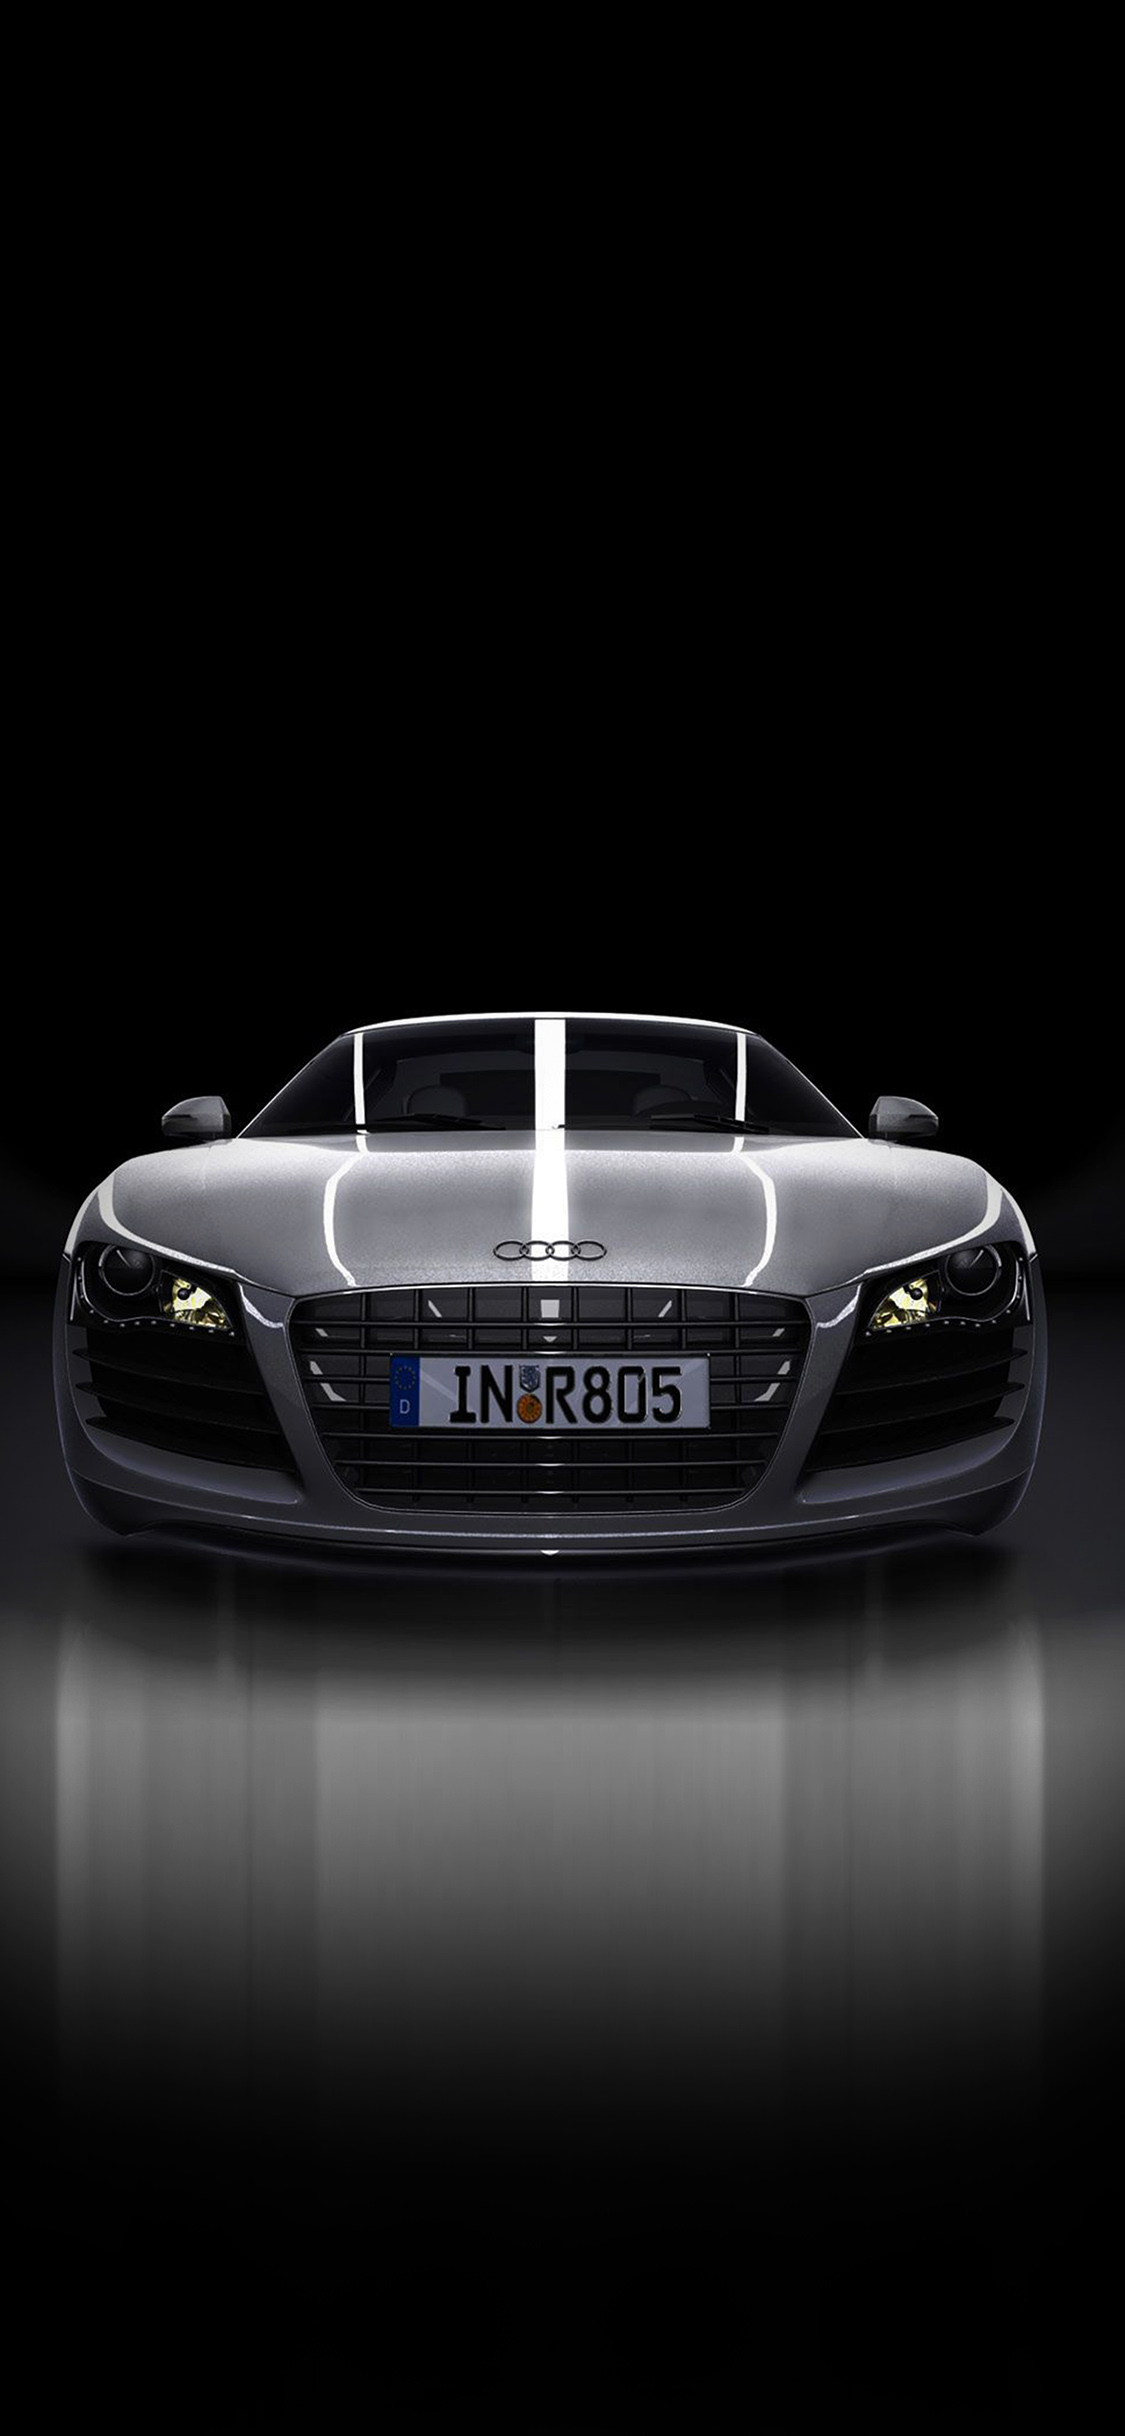 Av50 Audi Supercar Dark Black Illustration Art Wallpaper